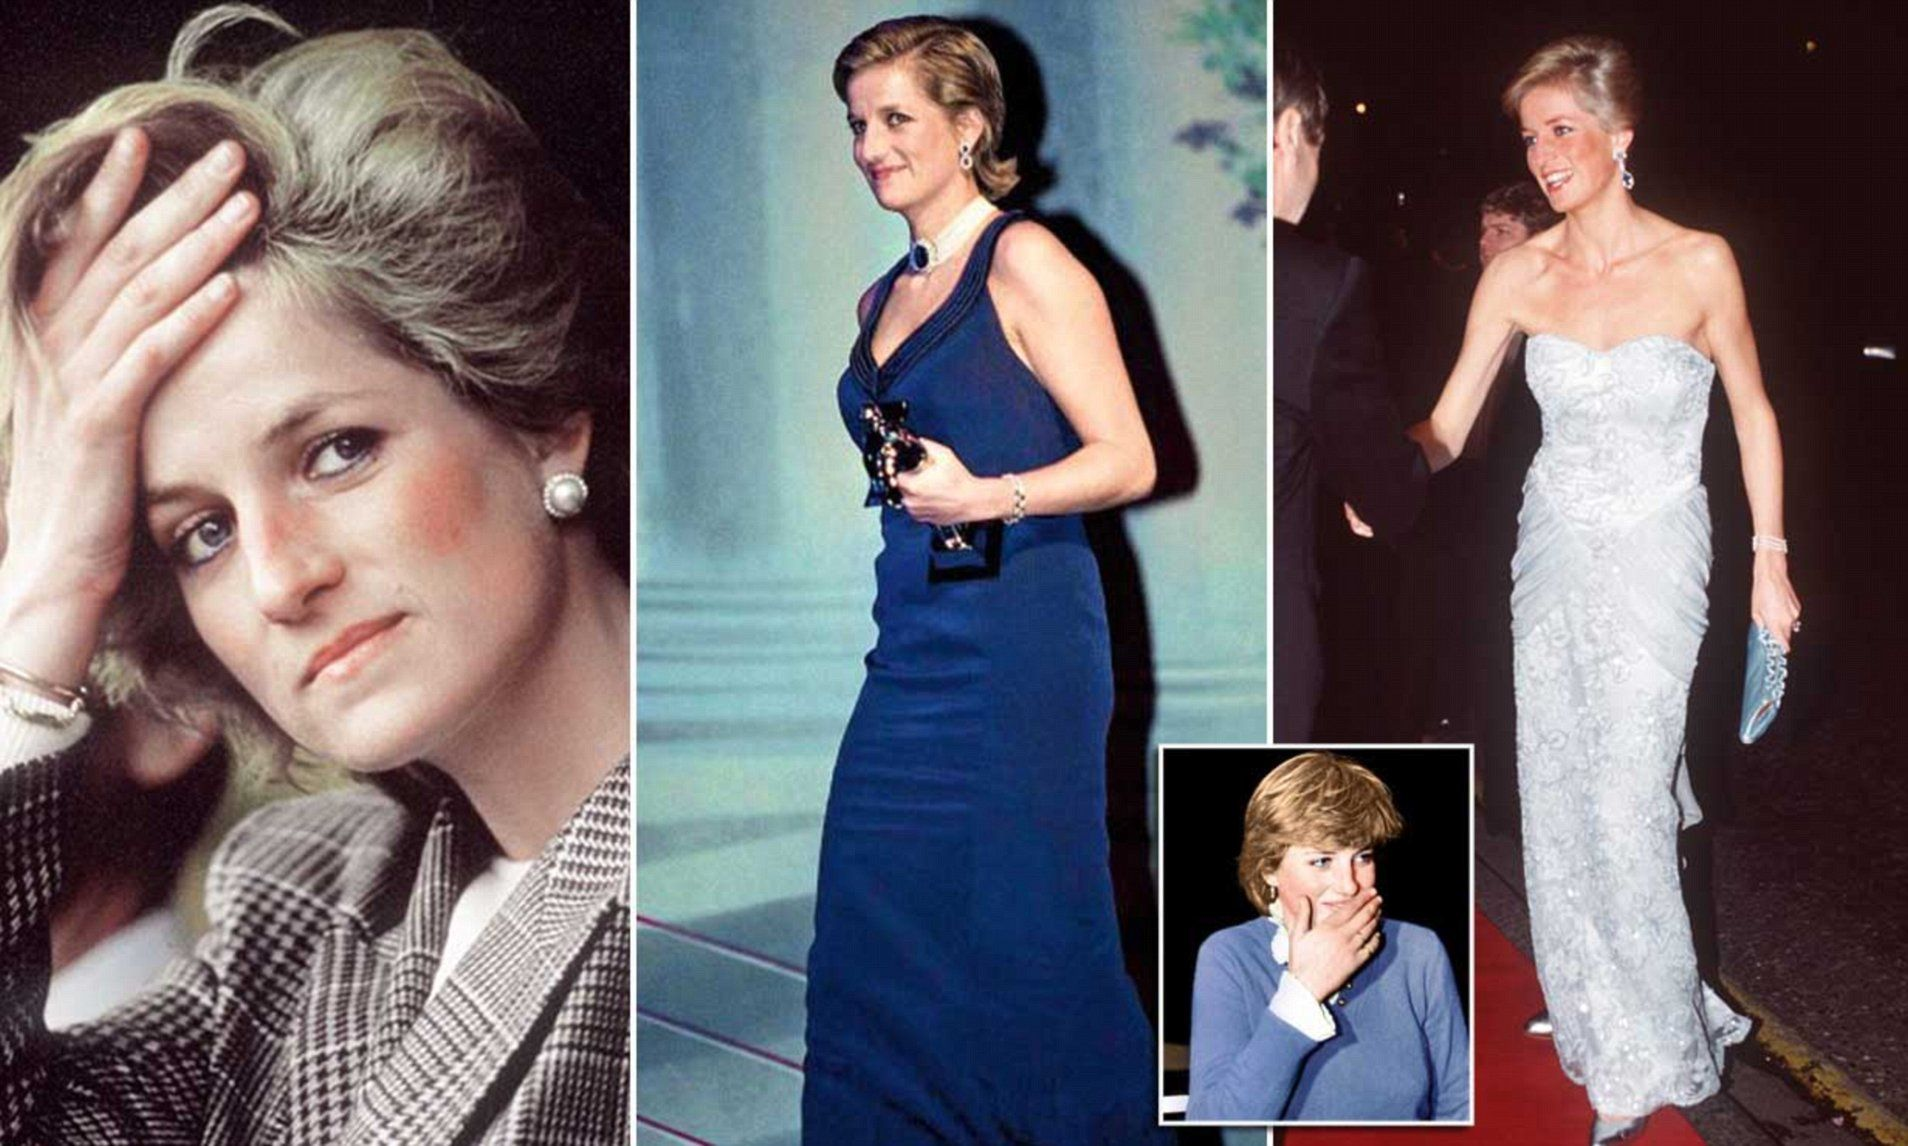 Diana fretted over measuring up to worldly Camilla Diana